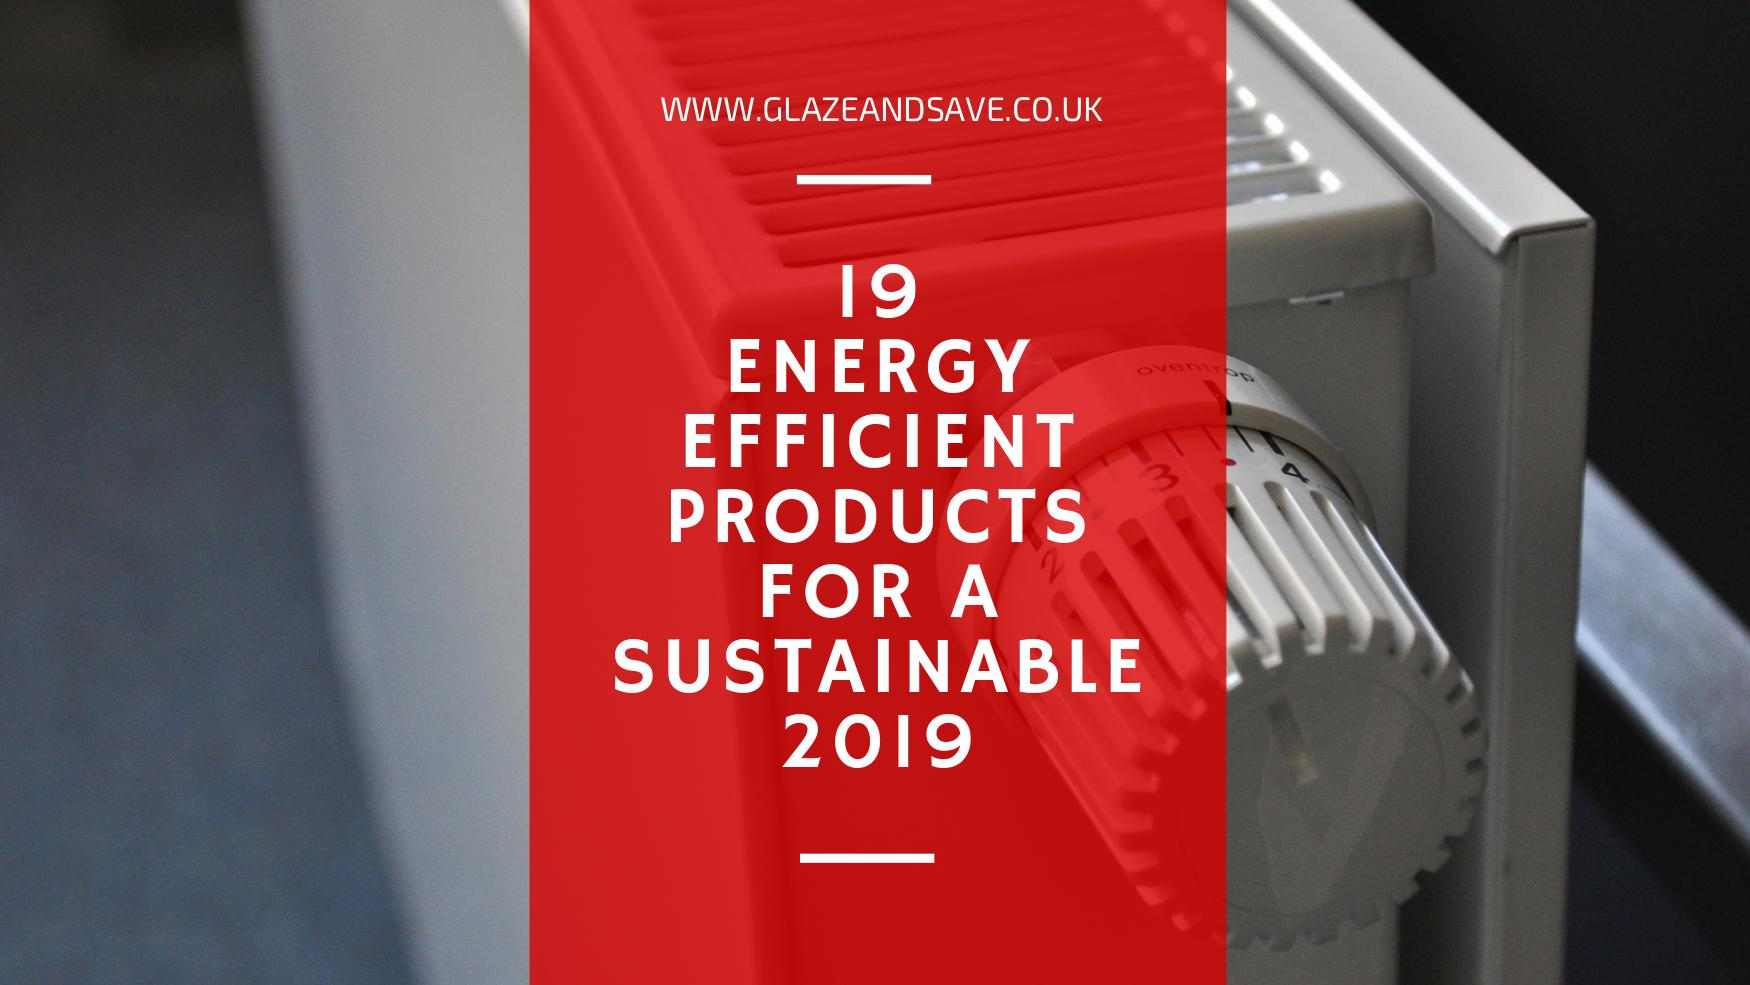 1b0a7c0fa 19 Energy Efficient Products for 2019 by Glaze & Save bespoke magnetic  secondary glazing and draught